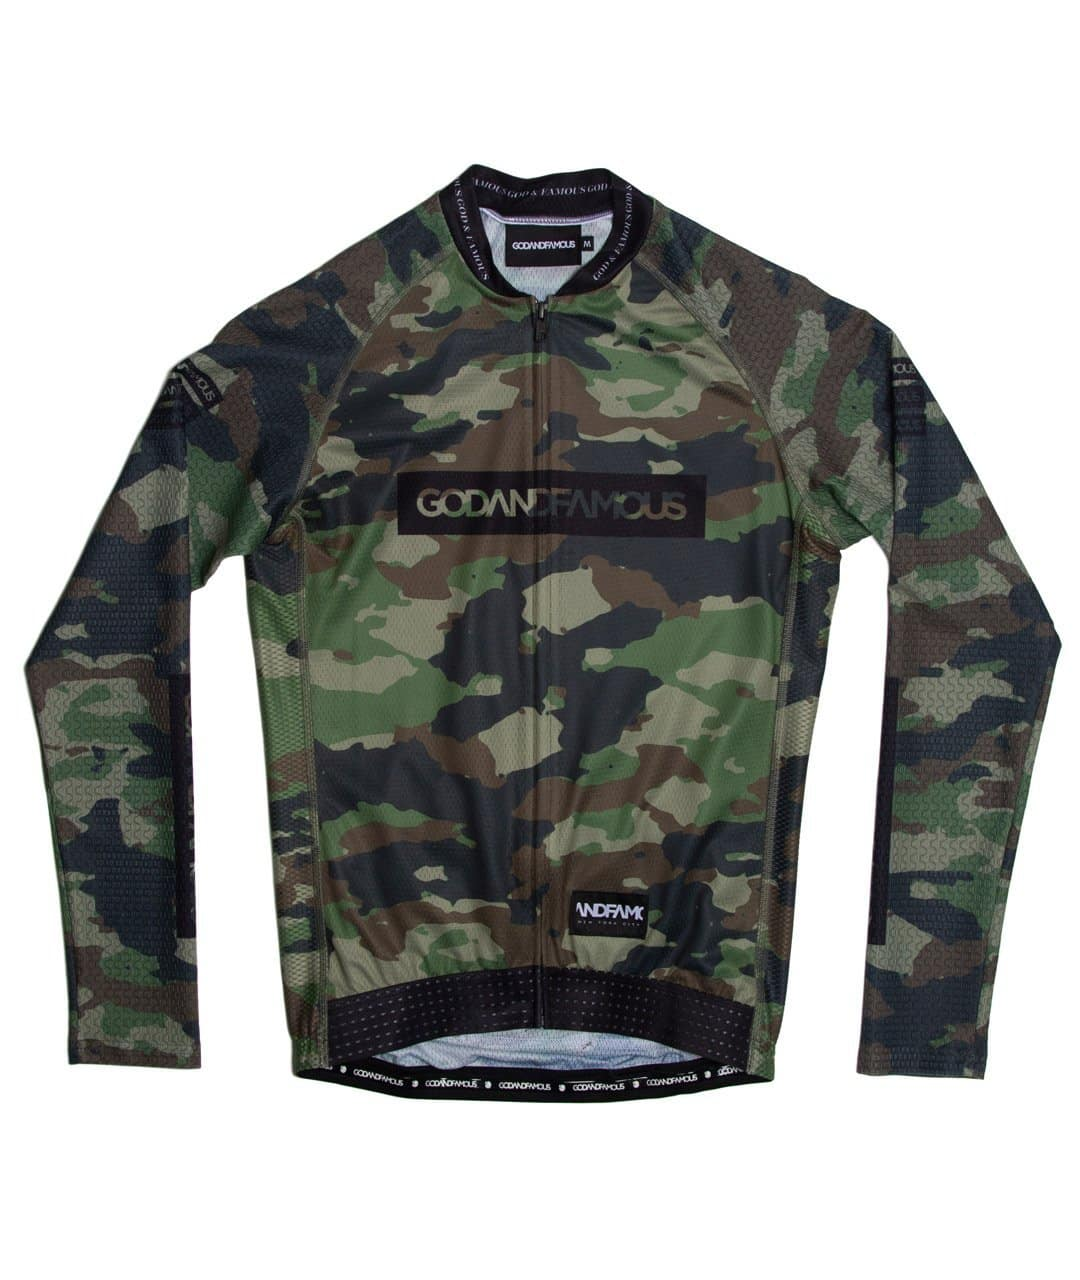 GOD & FAMOUS Woodland Camo LS Jersey